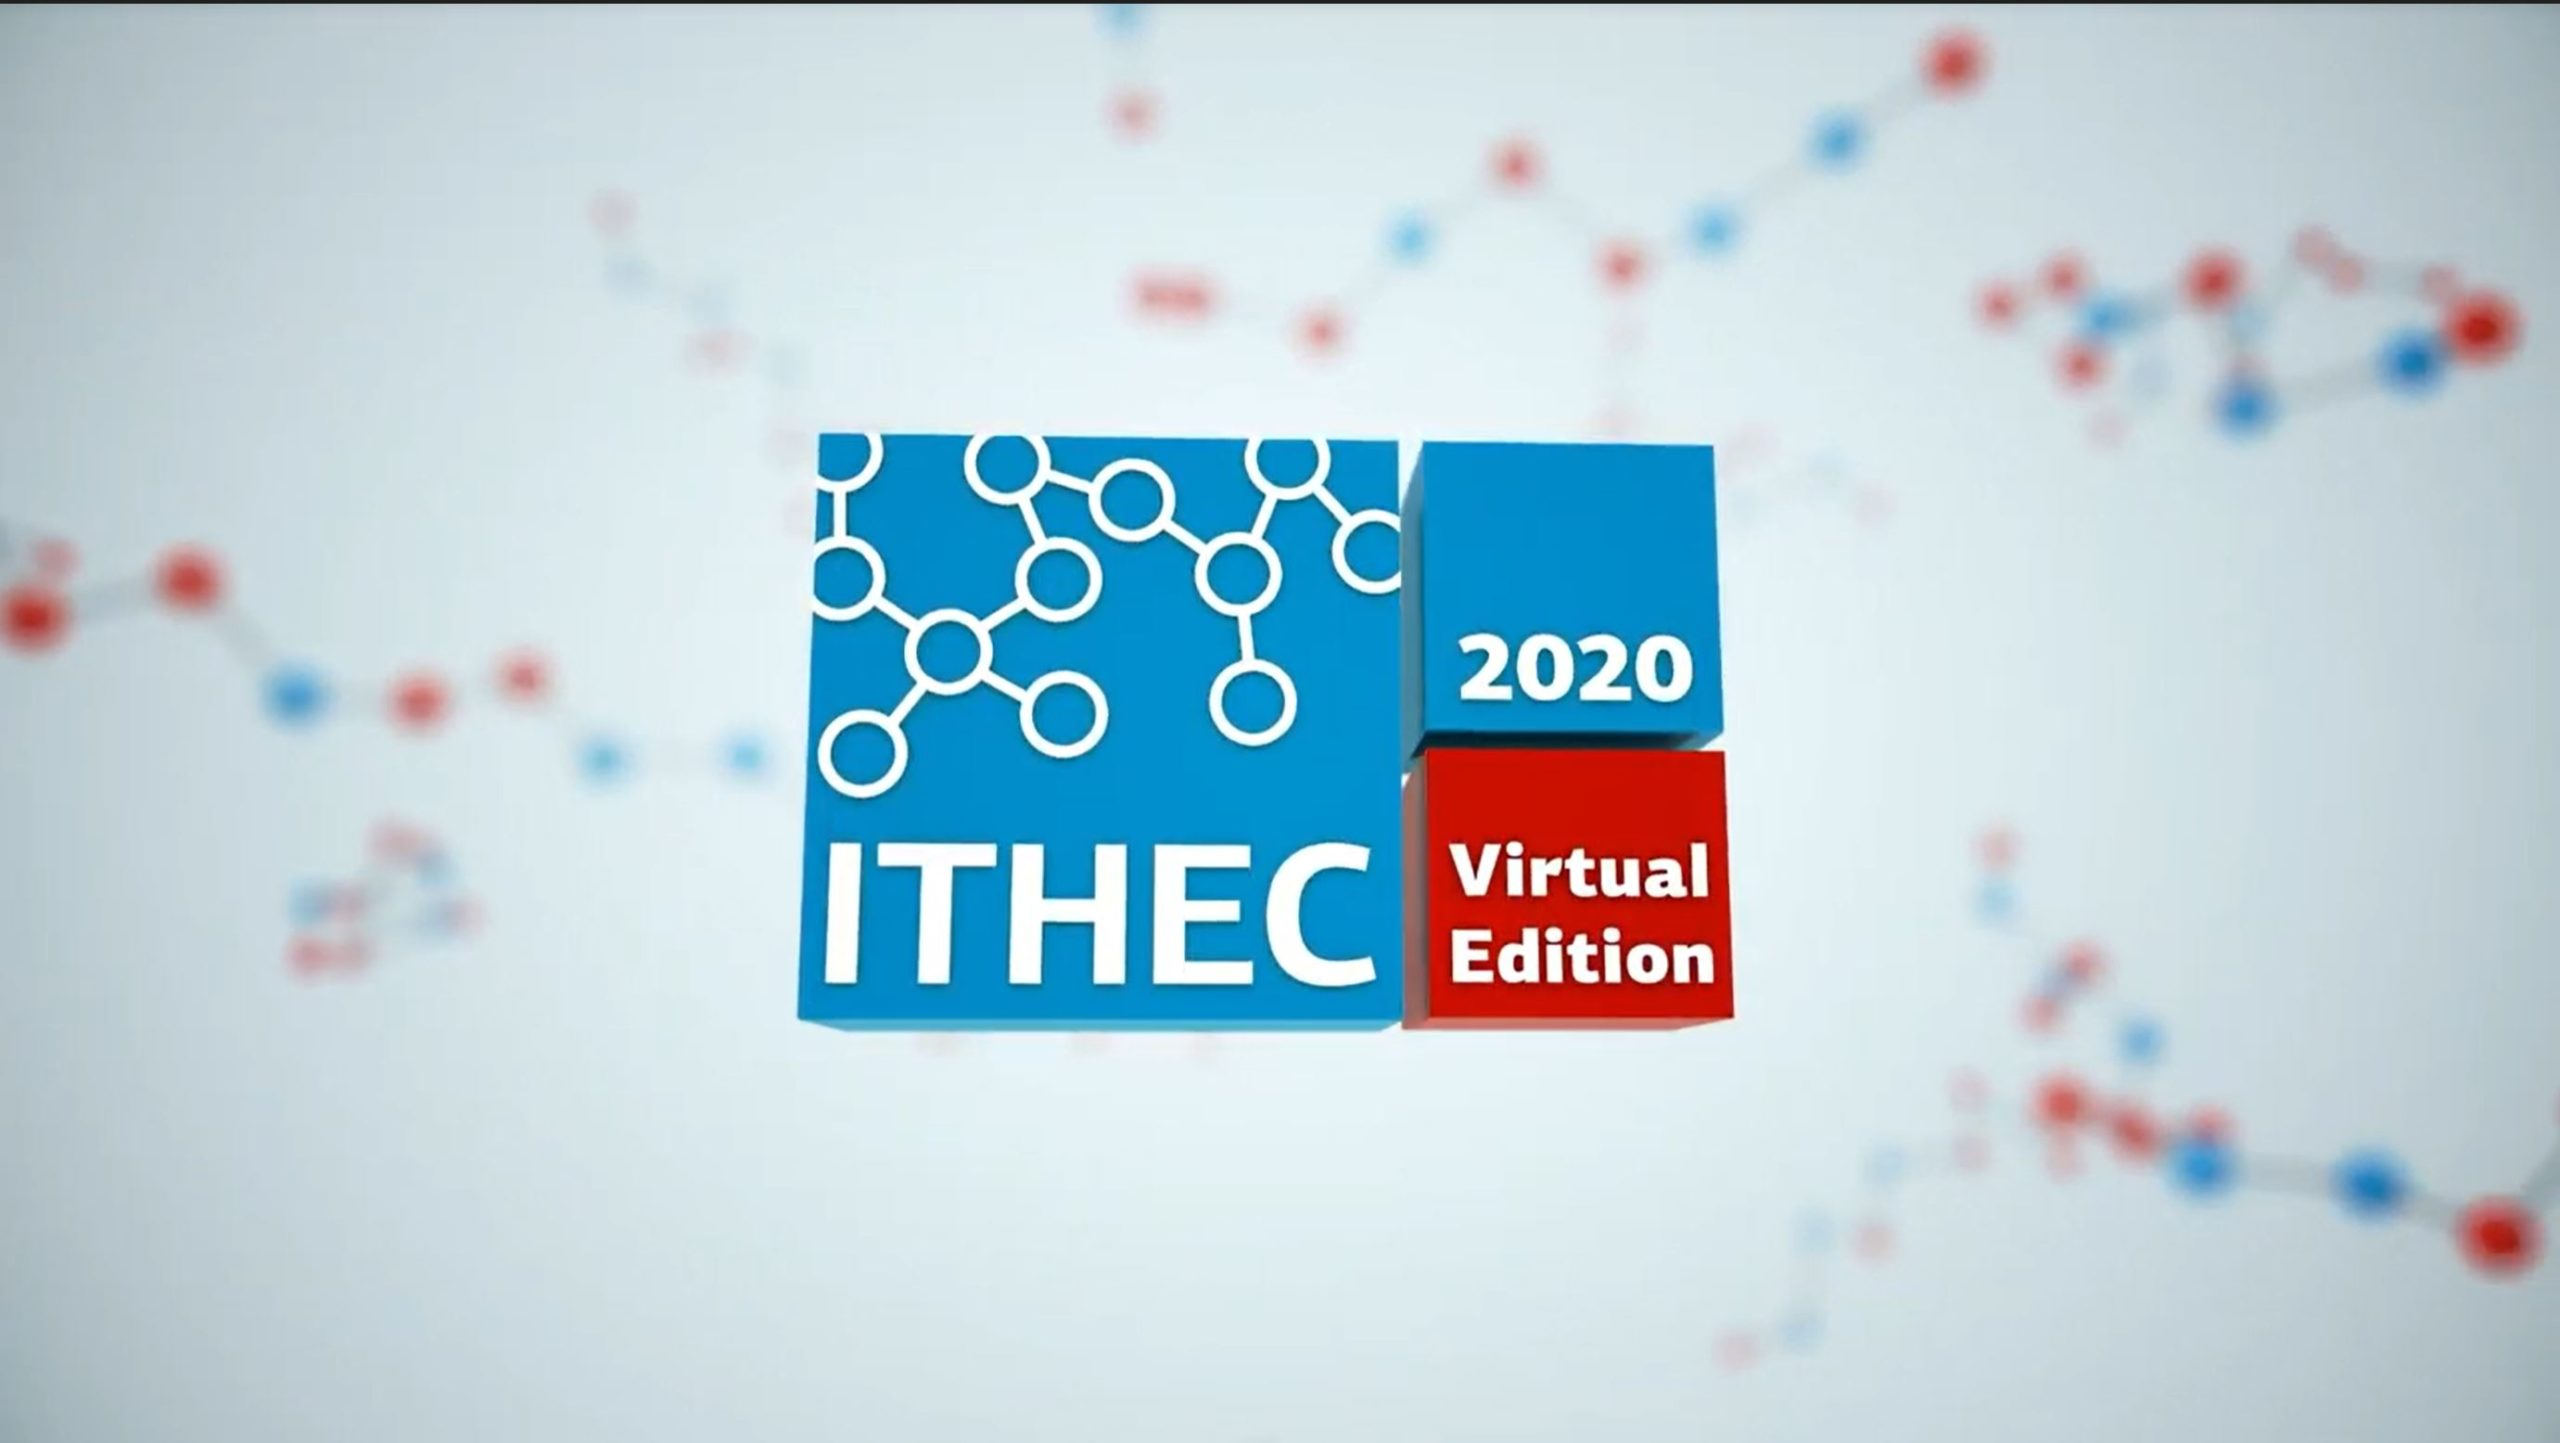 Header of the ITHEC 2020 - a PIRATEx online event production